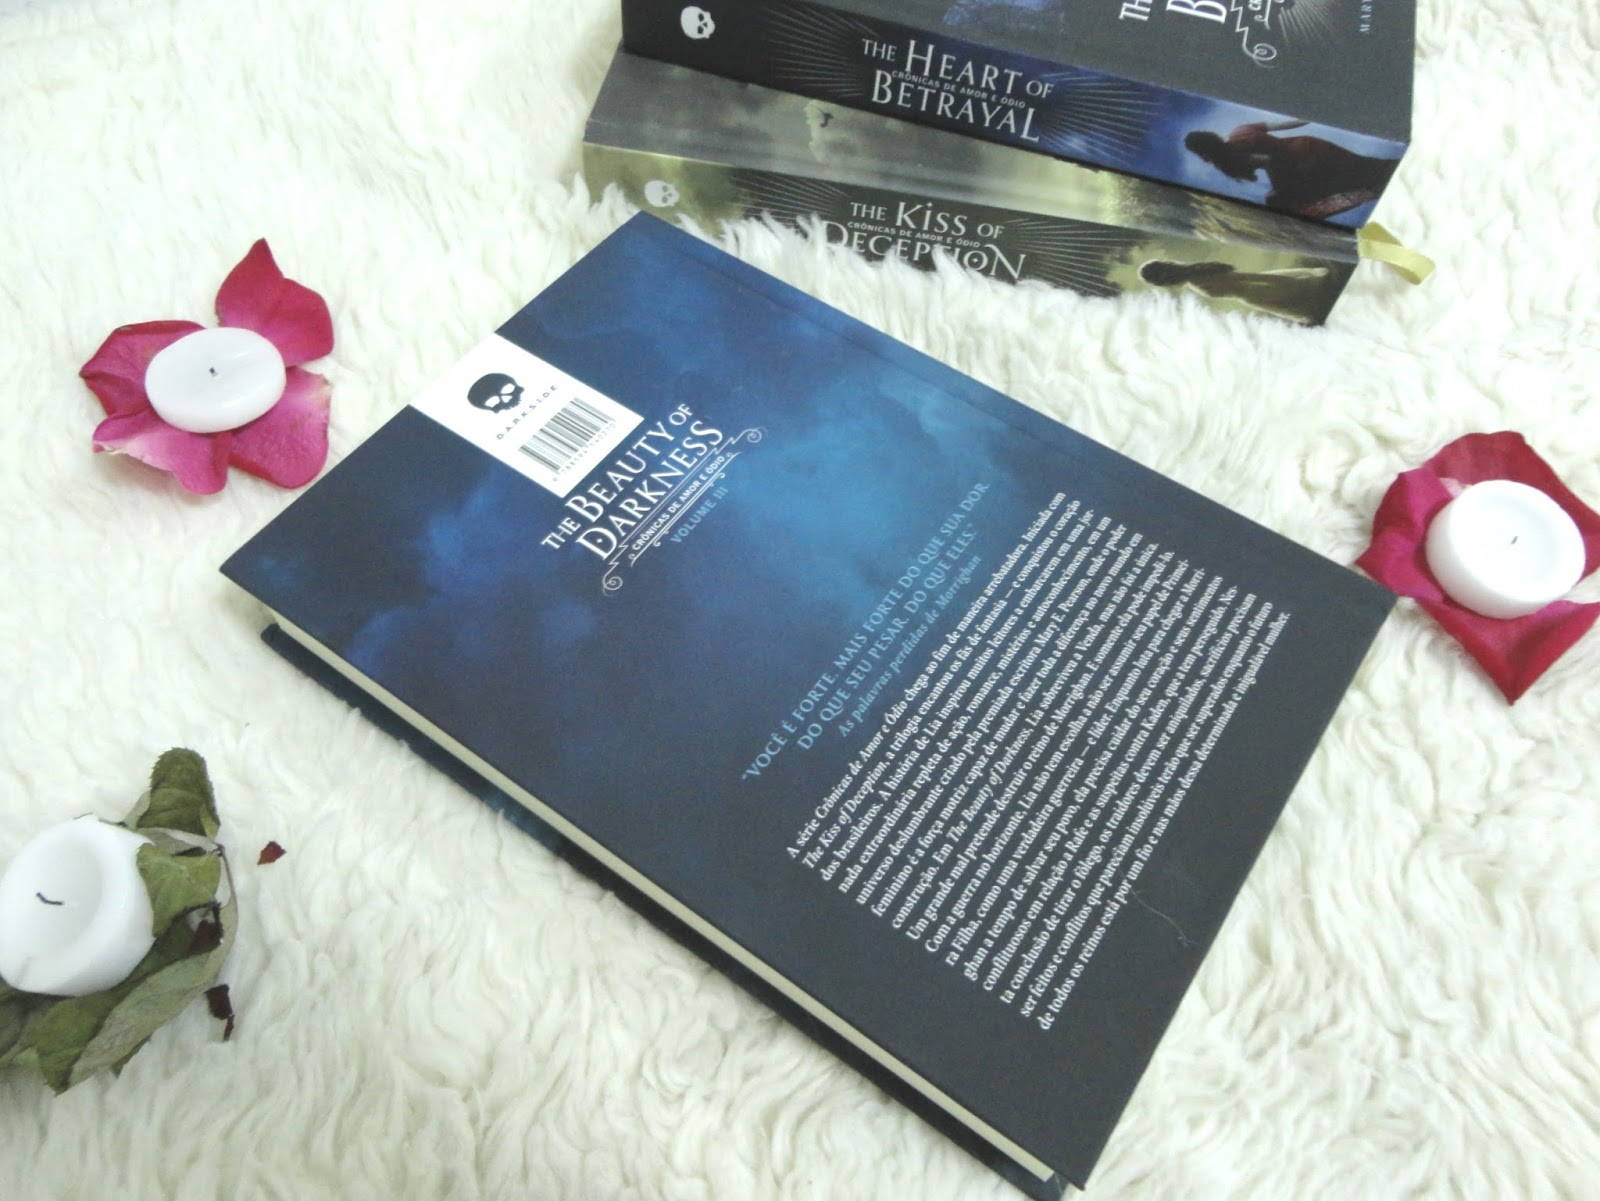 RESENHA DO LIVRO: THE BEAUTY OF DARKNESS - MARY E. PEARSON @DarkSideBook